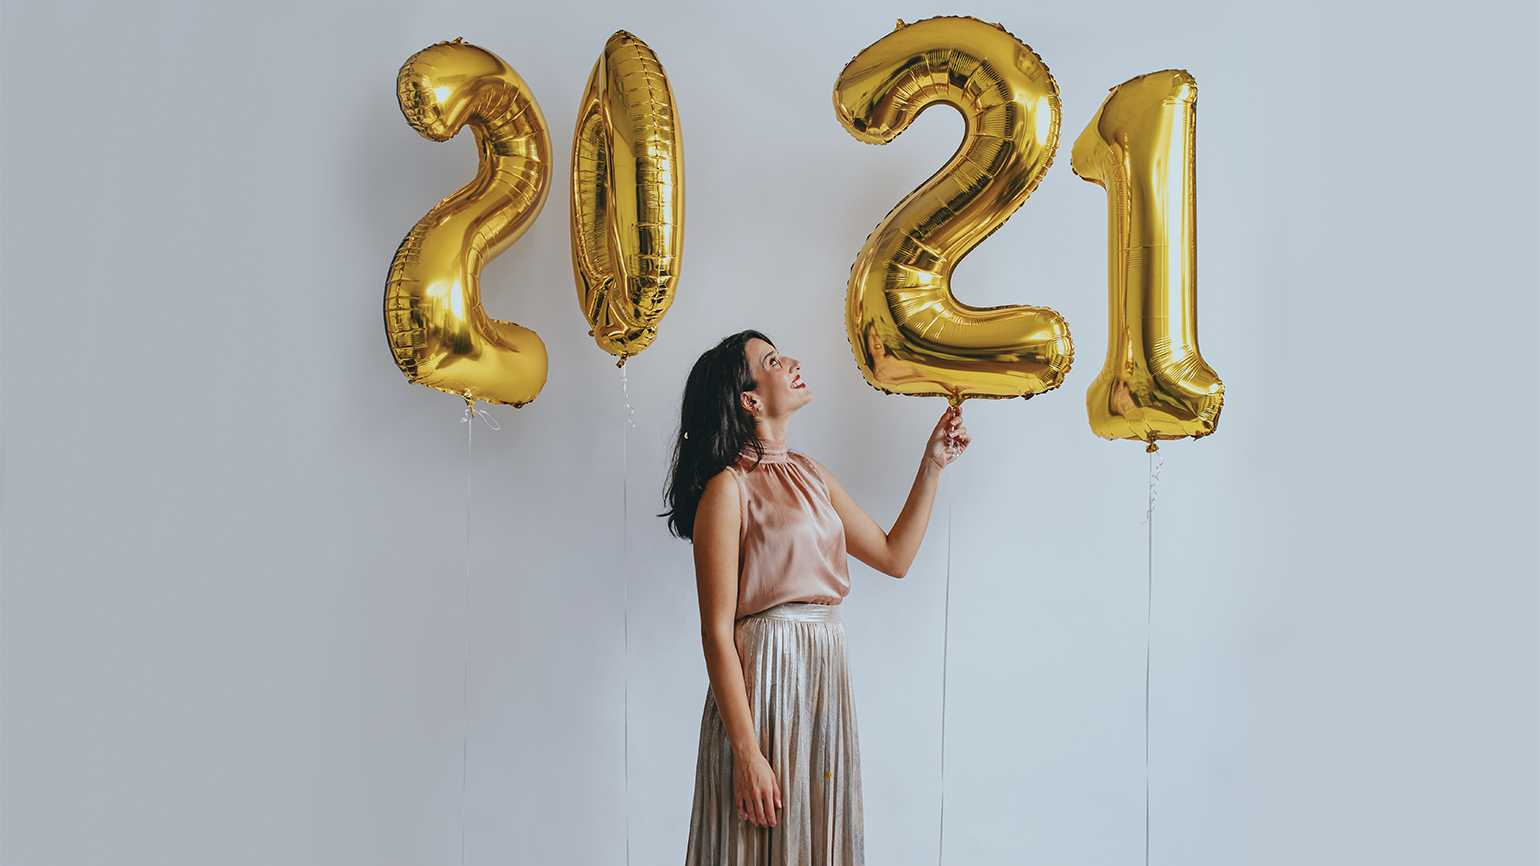 6 Ways to Build Hope in the New Year